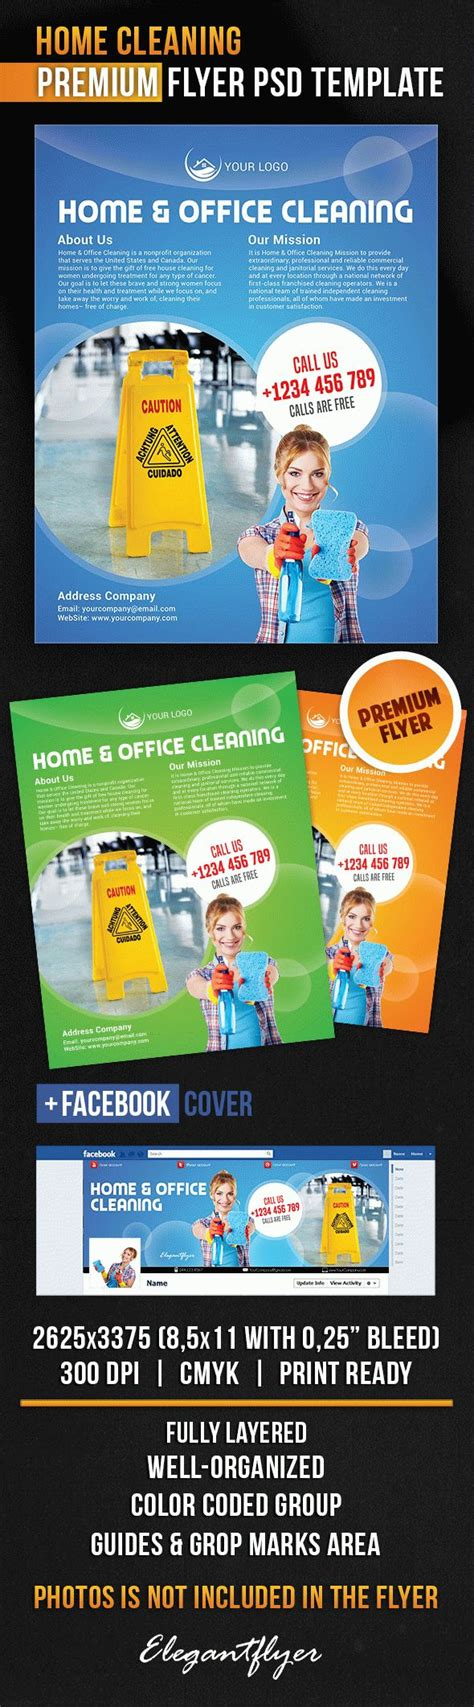 Cleaning Services Bi Fold Template By Elegantflyer Home Cleaning Flyer Psd Template By Elegantflyer